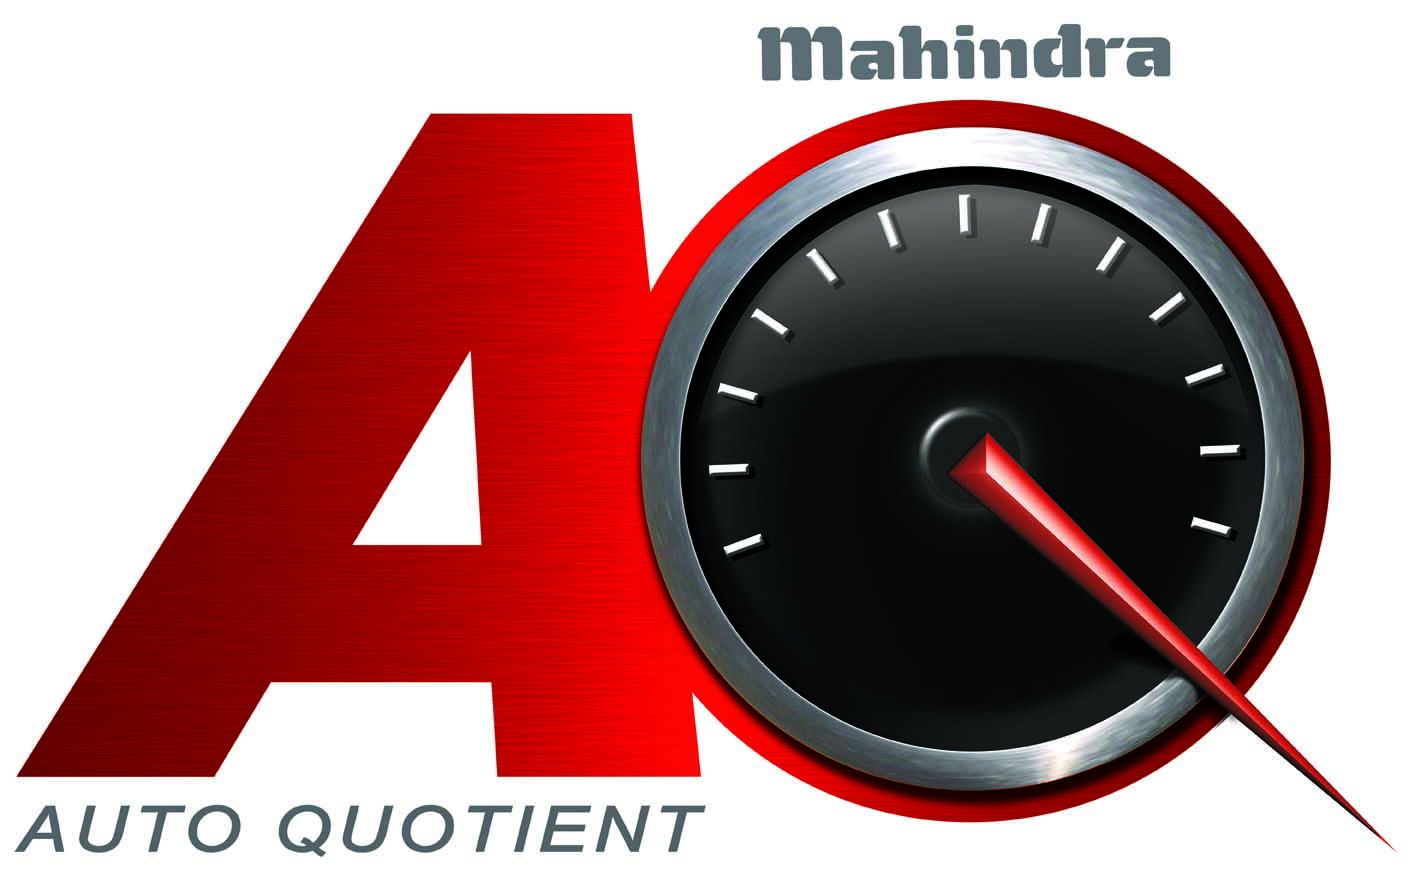 mahindra-automotive-quotient